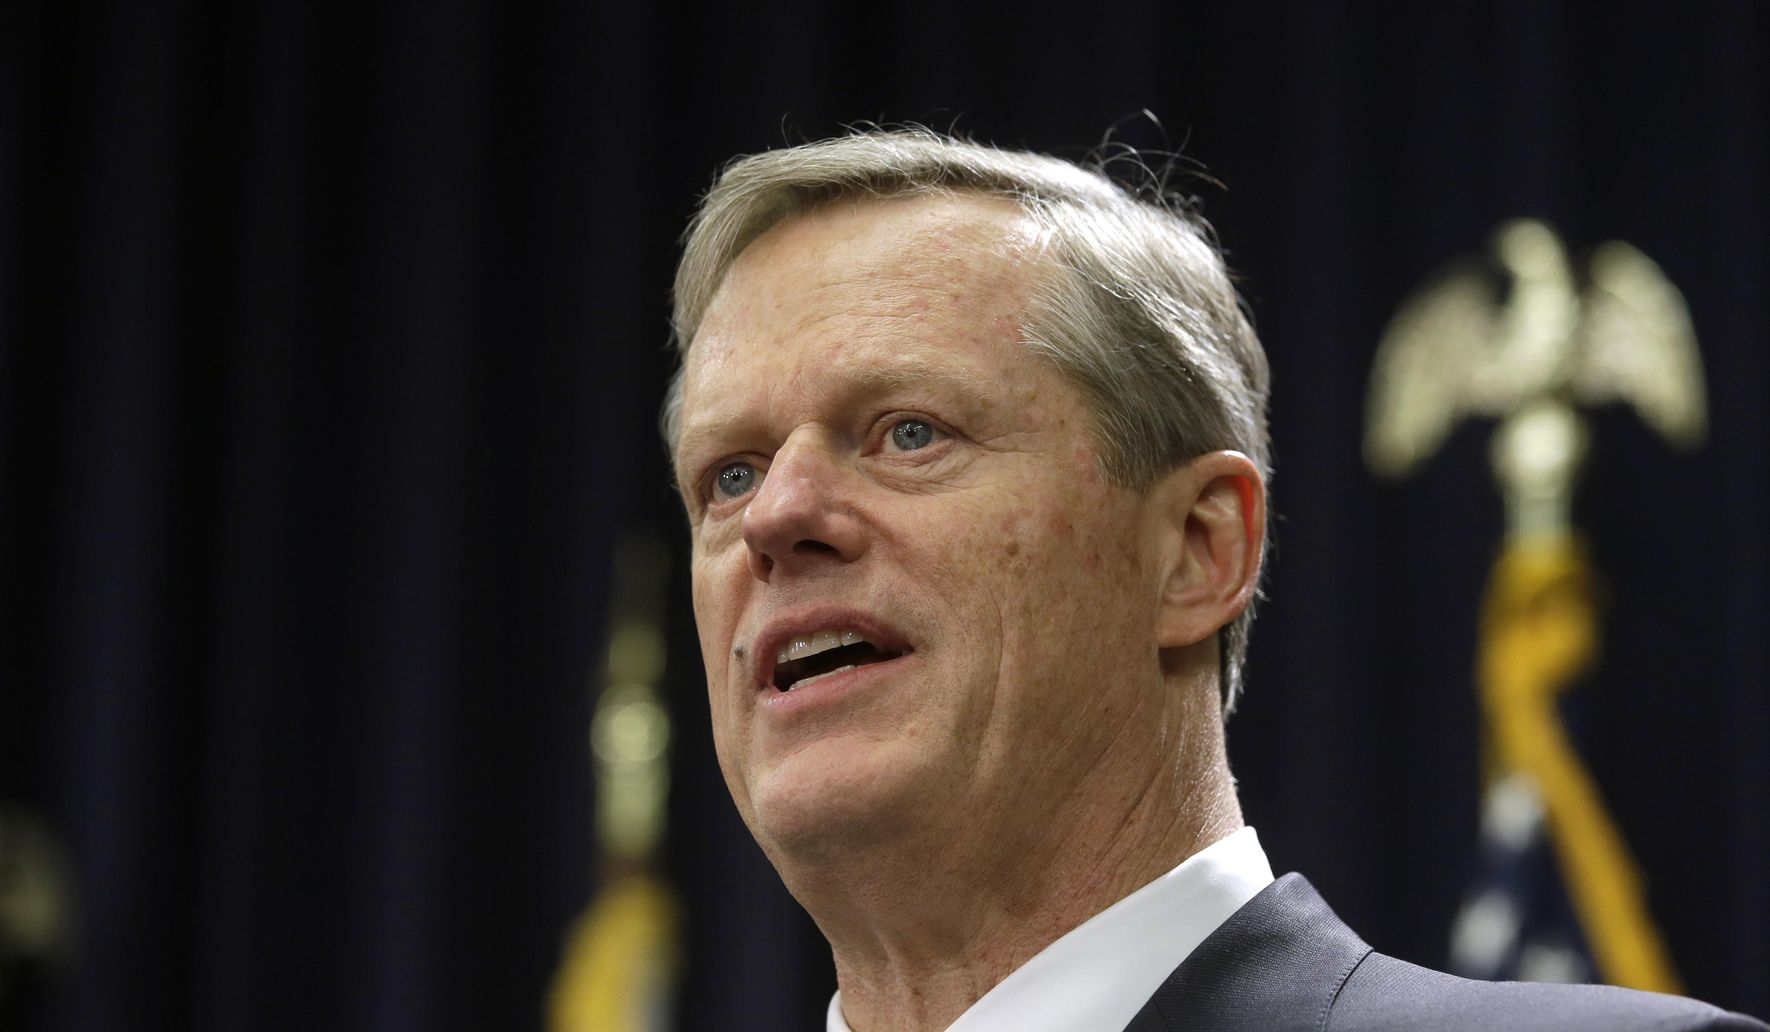 Gov. Baker signs LGBTQ conversion therapy ban for minors